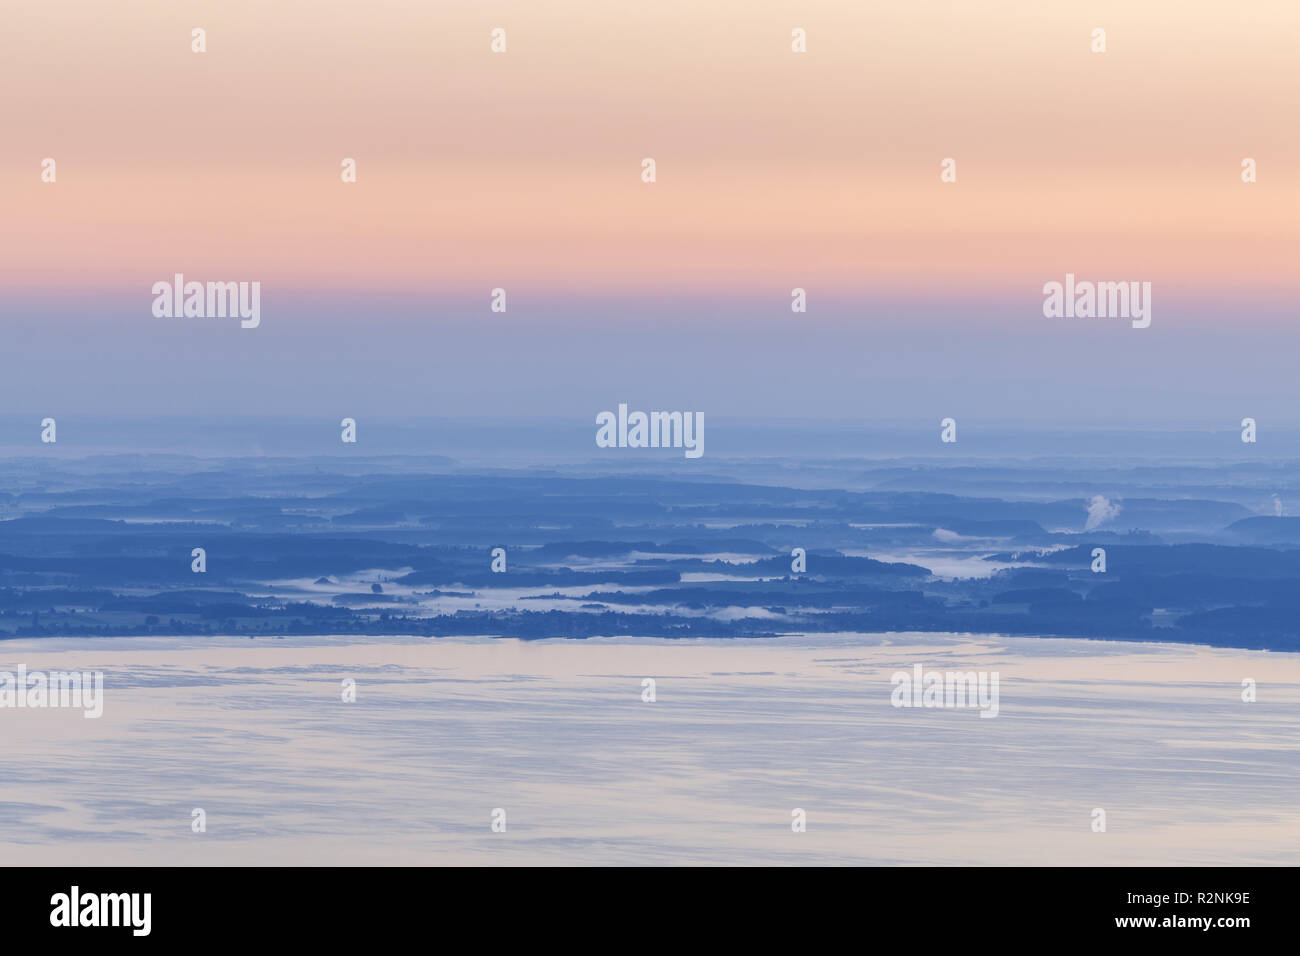 View from the Piesenhauser alp to the Chiemsee, Chiemgau Alps, Marquartstein, Chiemgau, Upper Bavaria, Southern Germany, Germany, Europe - Stock Image